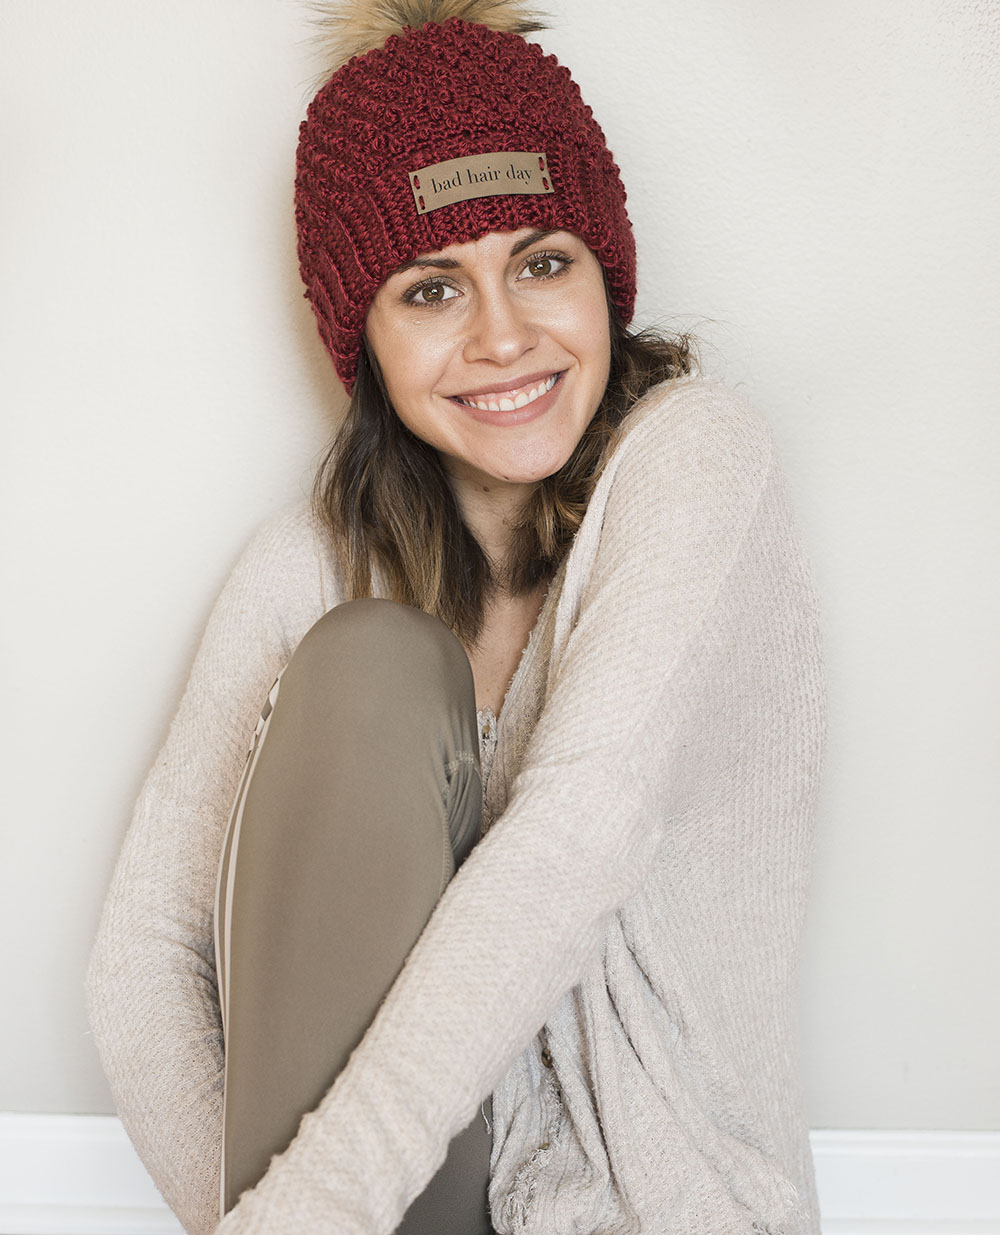 Free Crochet Pattern for the Bad Hair Day Beanie - Megmade with Love